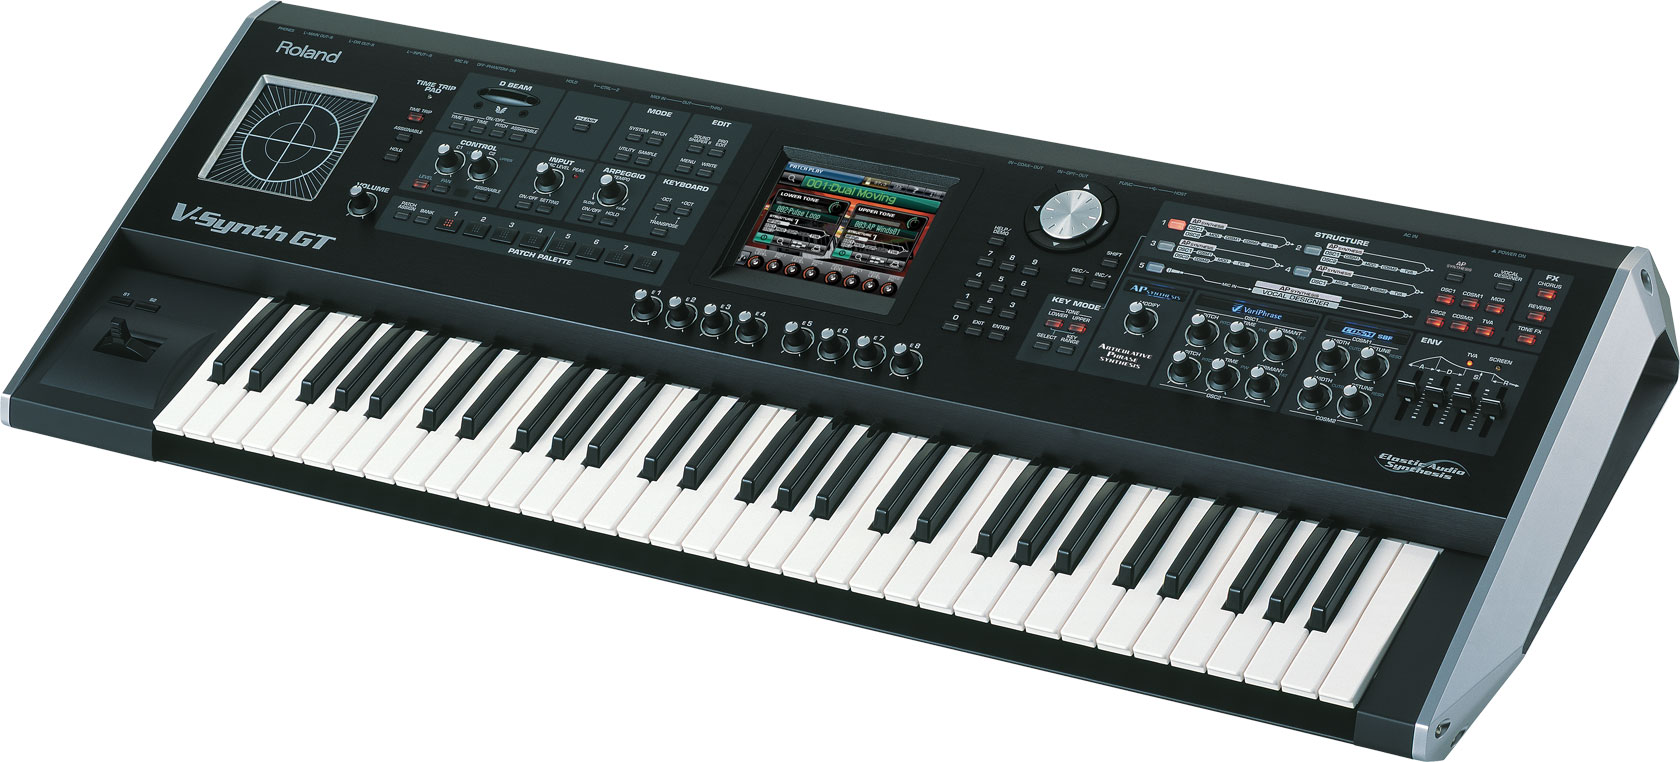 roland v synth gt elastic audio synthesizer rh roland com roland v synth gt service manual Roland V-Synth Review